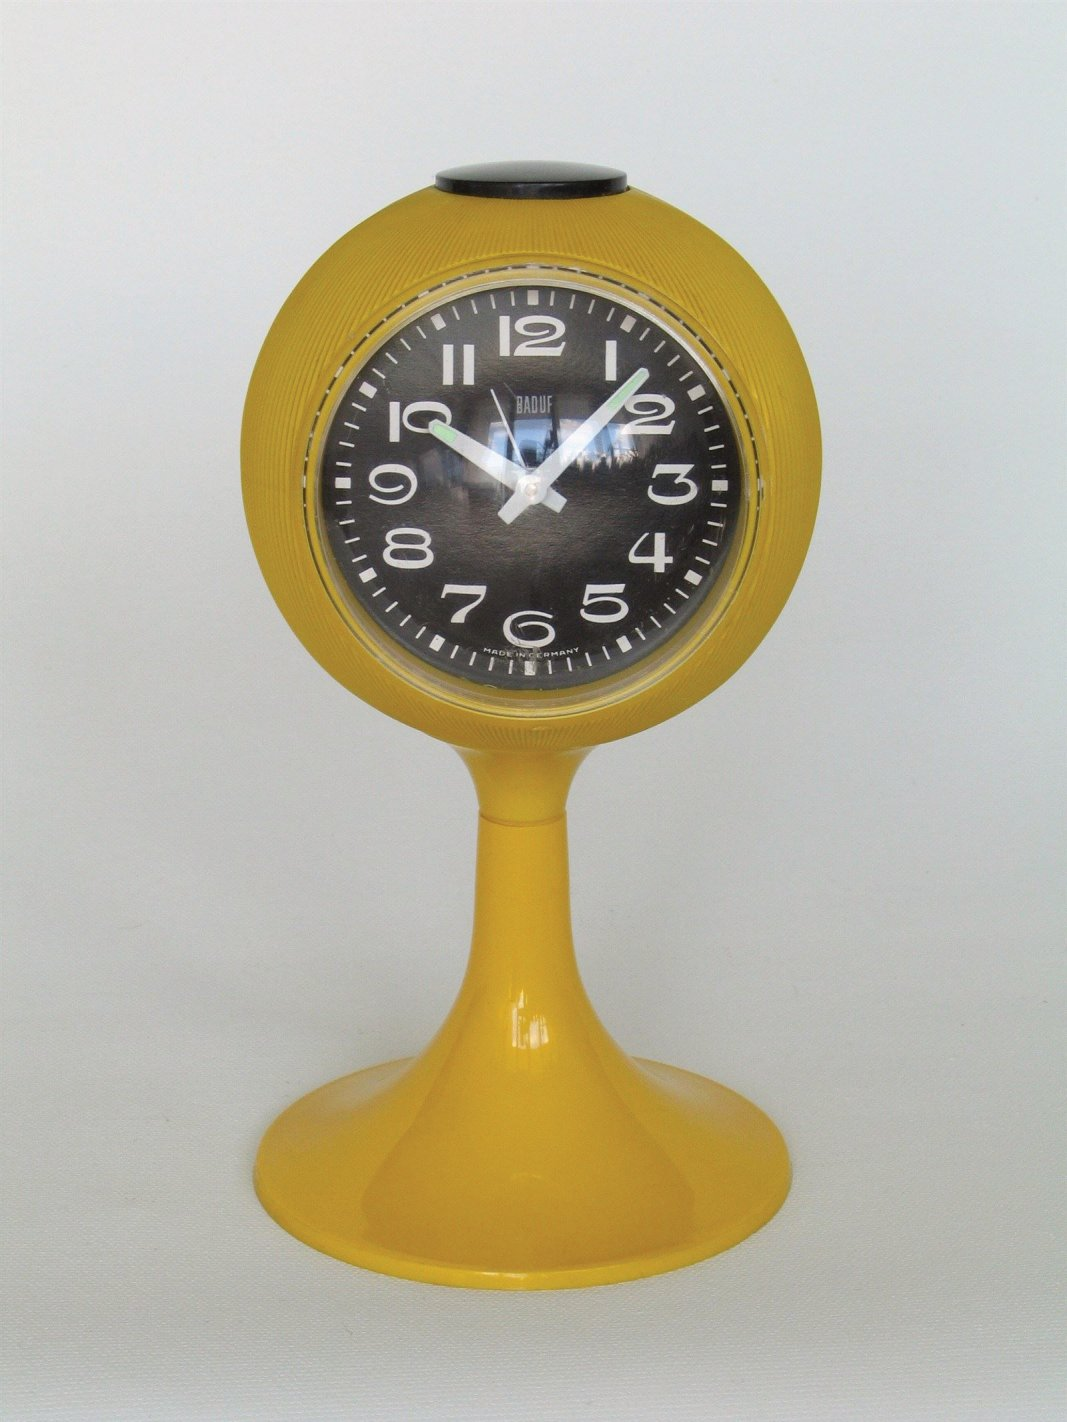 Space age clock